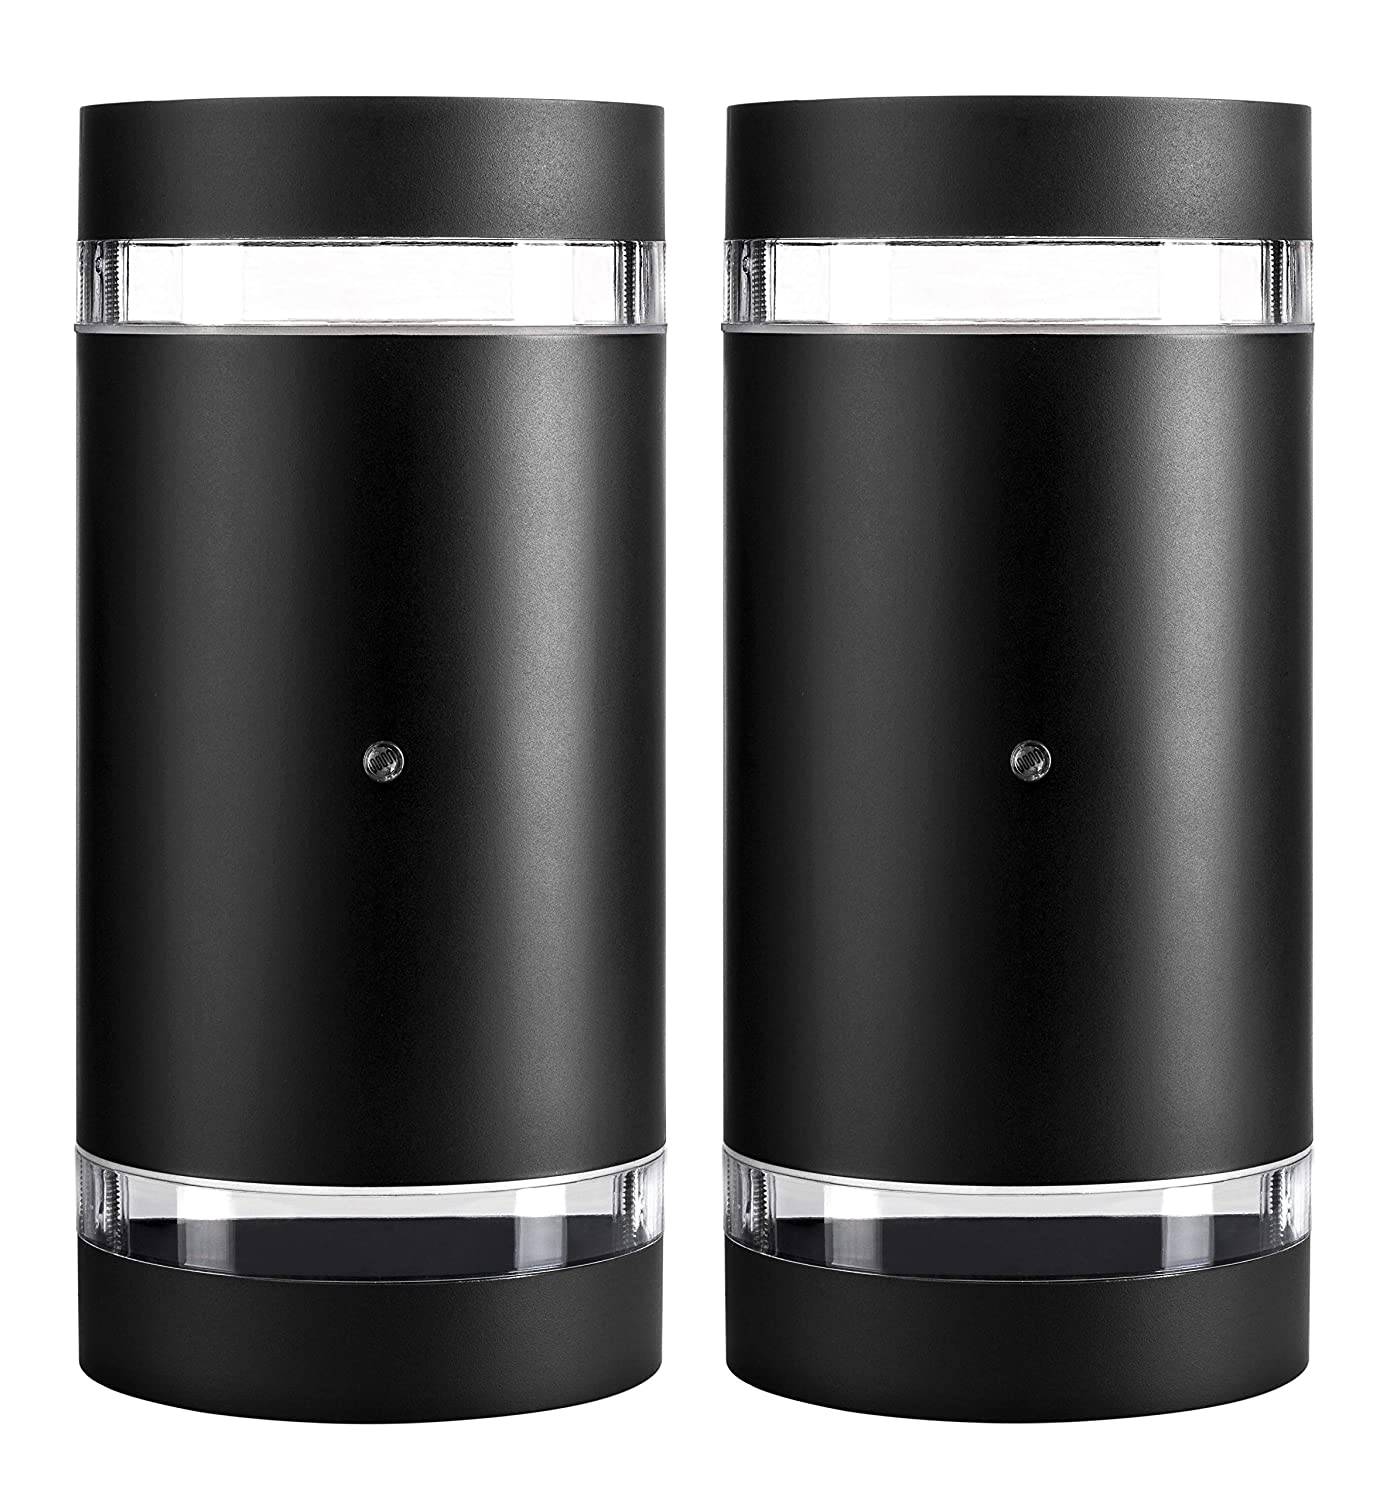 Hyperikon LED Porch Sconce Cylinder Light 12W, Black Modern Wall Mount with Photocell, 1000 lumen, 4000K (Daylight Glow), IP65 Waterproof Outdoor Up Down Light (2 Pack)